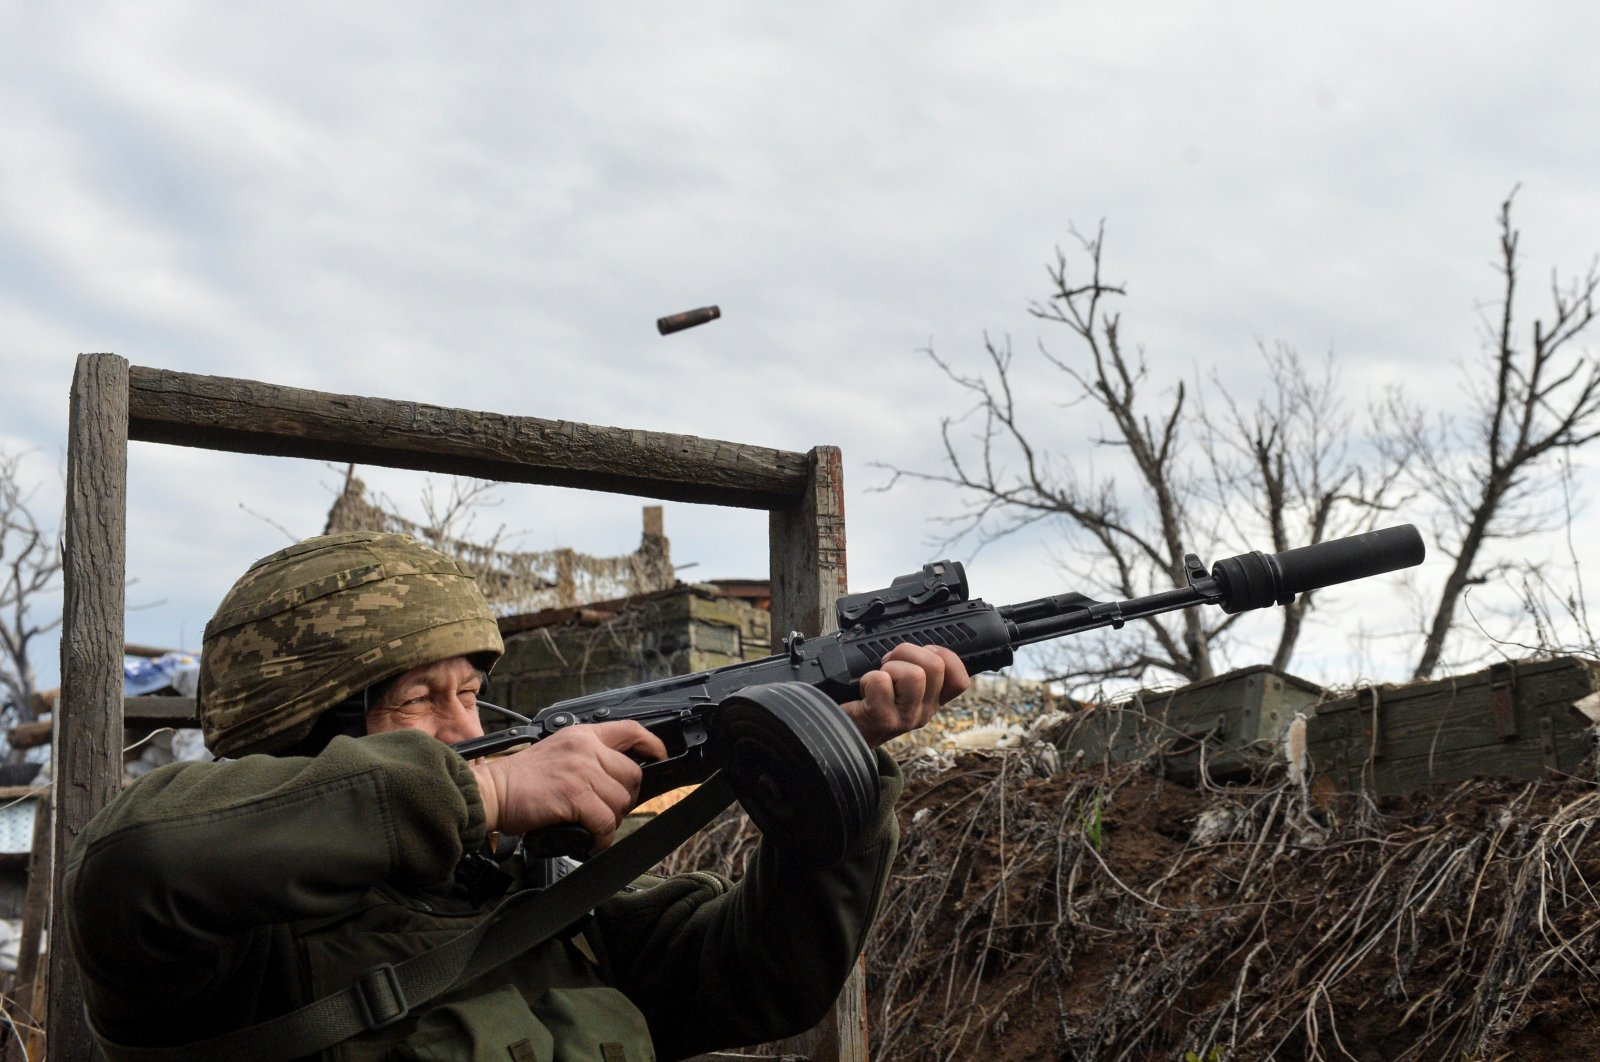 A service member of the Ukrainian armed forces fires in an attempt to shoot down an alleged unmanned aerial vehicle (UAV) at fighting positions on the line of separation from pro-Russian rebels near Donetsk, Ukraine, April 11, 2021. (Reuters Photo)